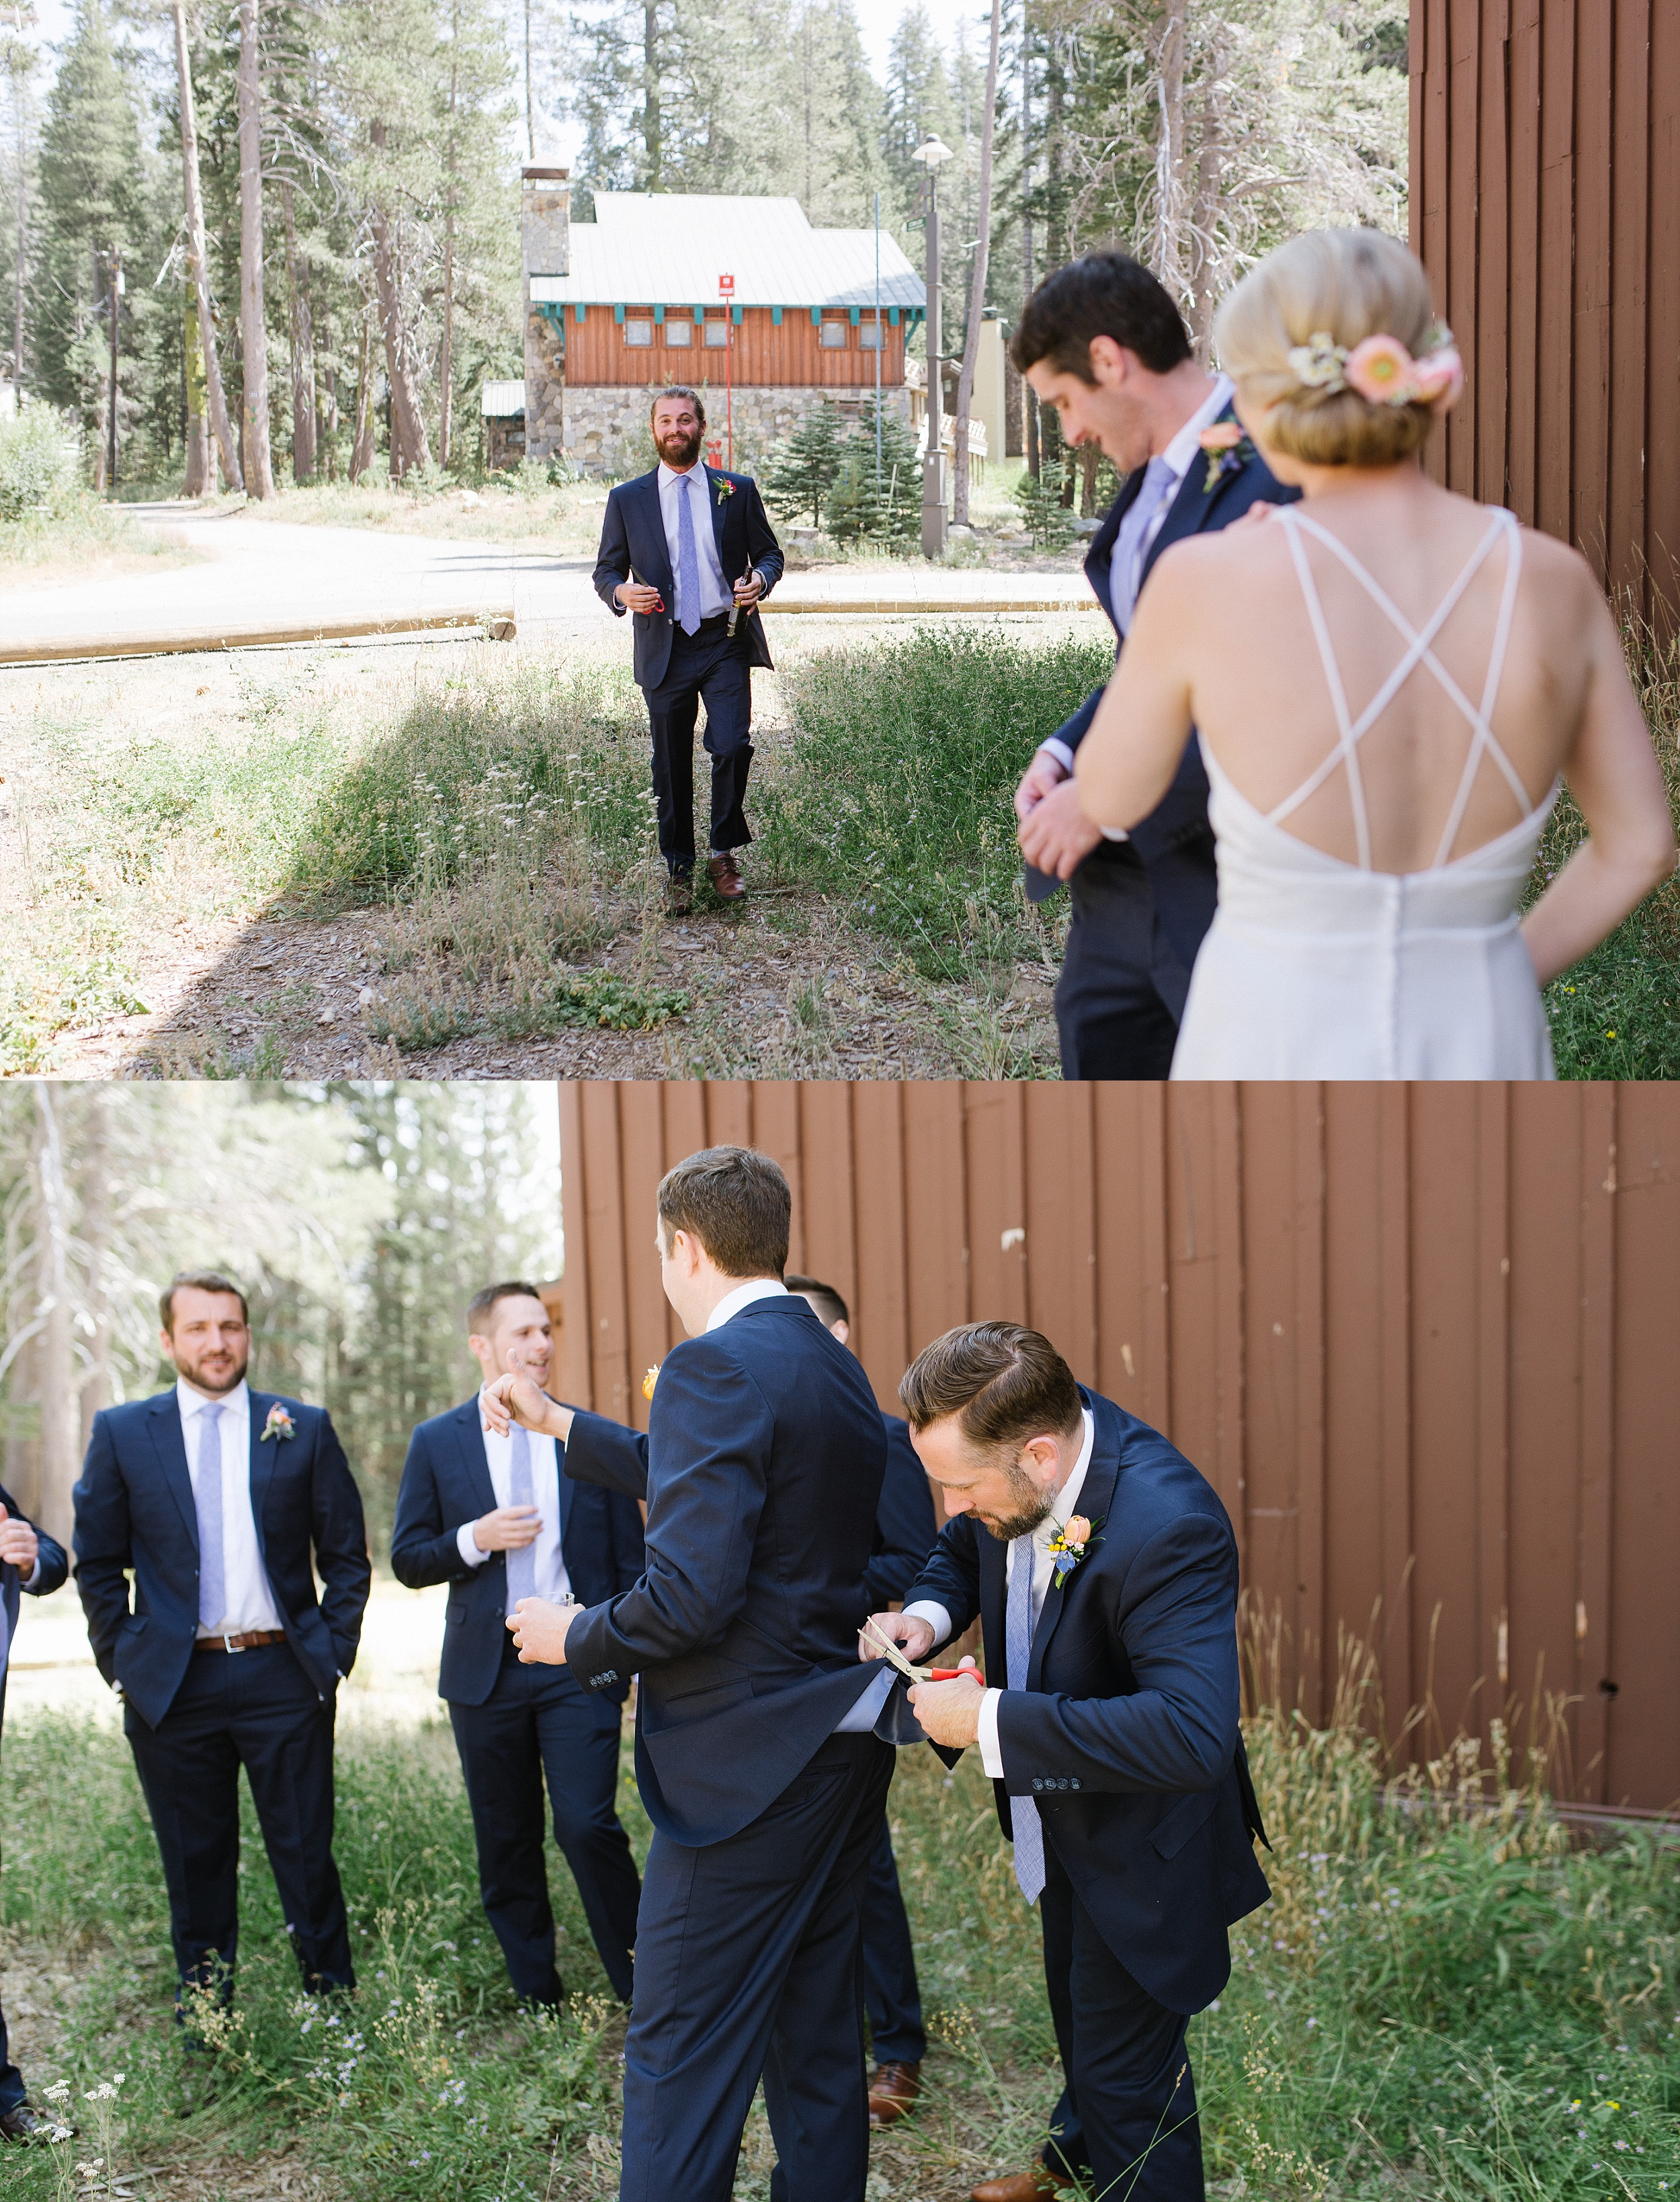 Sugar-Bowl-tahoe-wedding-sallyjohn_chelsea-dier-photography_0012.jpg